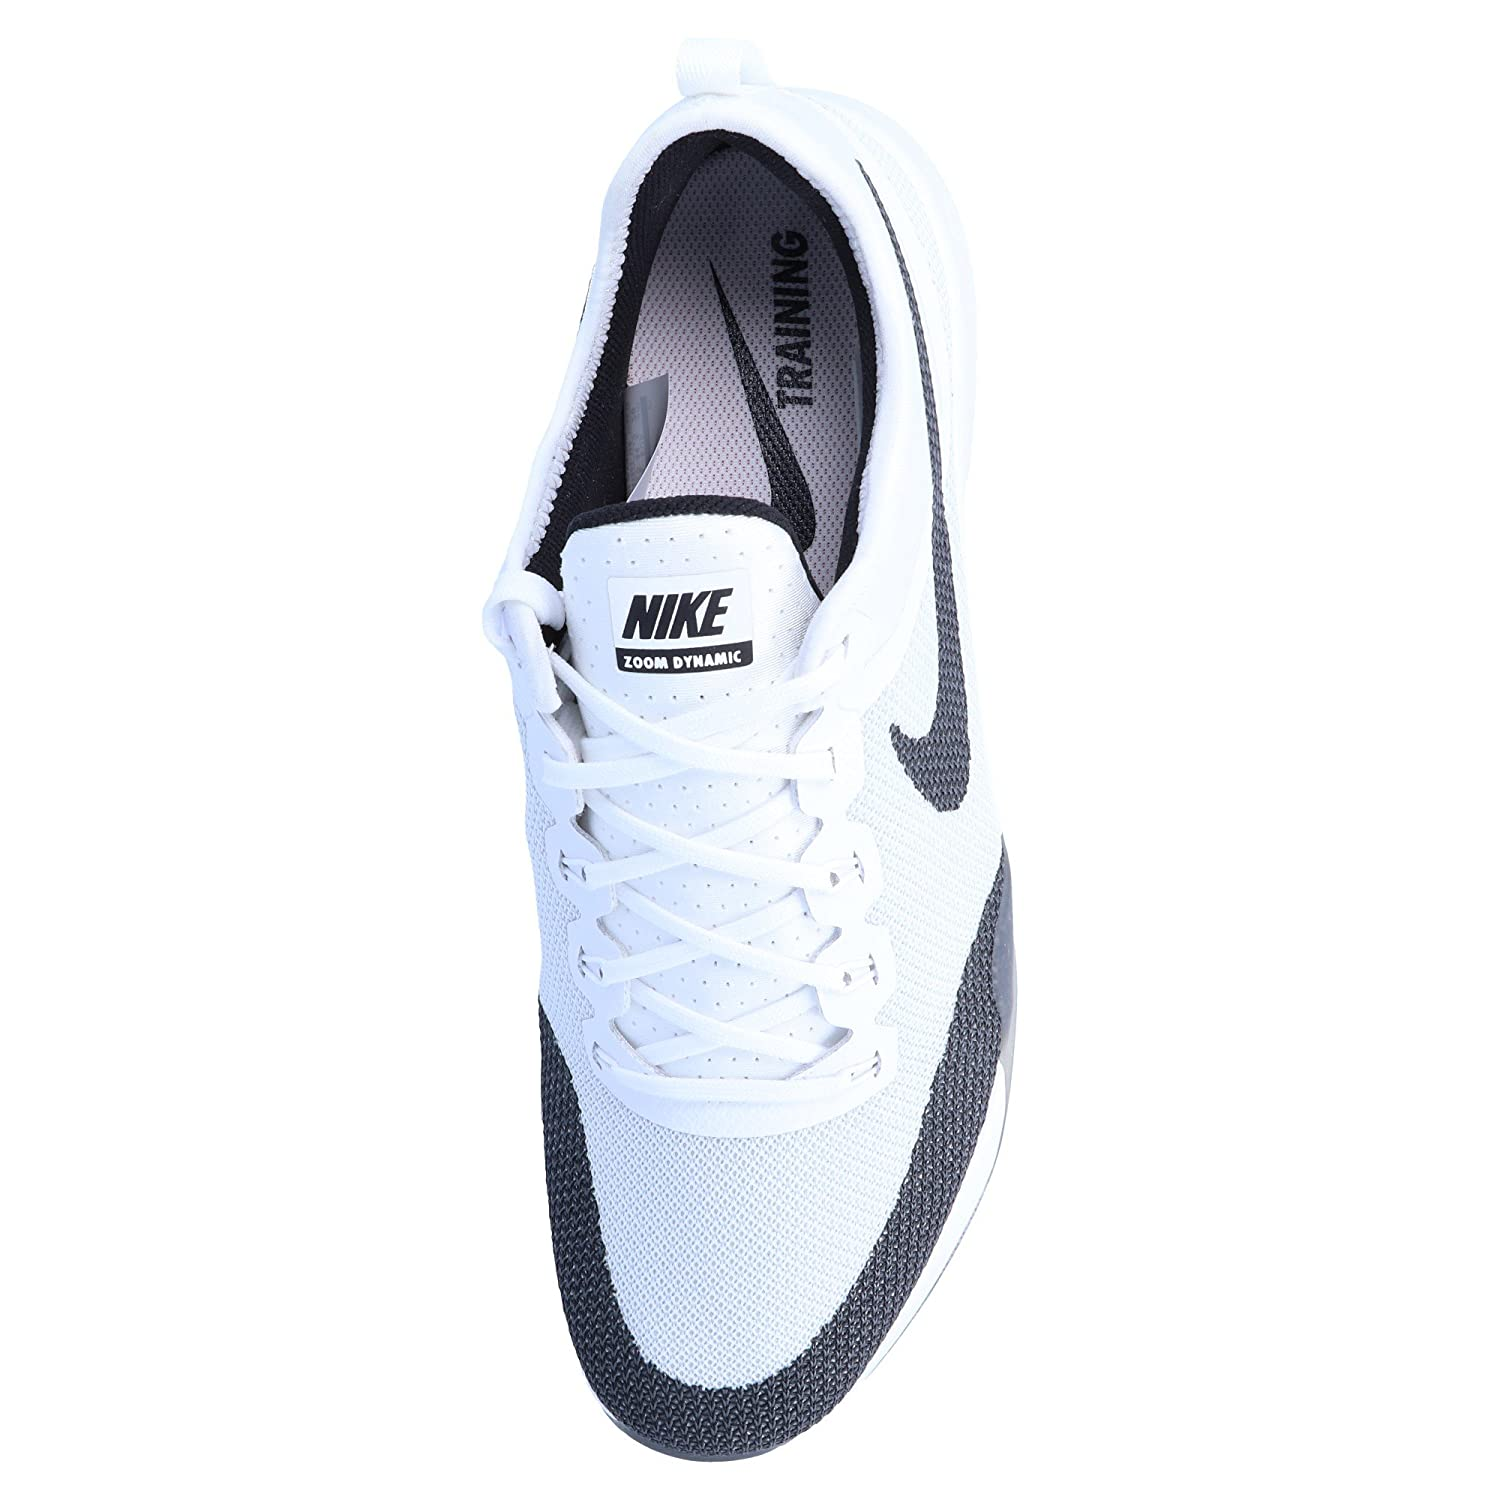 NIKE Shoe Women's Air Zoom Dynamic Training Shoe NIKE B0059BW1E8 7 B(M) US|White a2143e